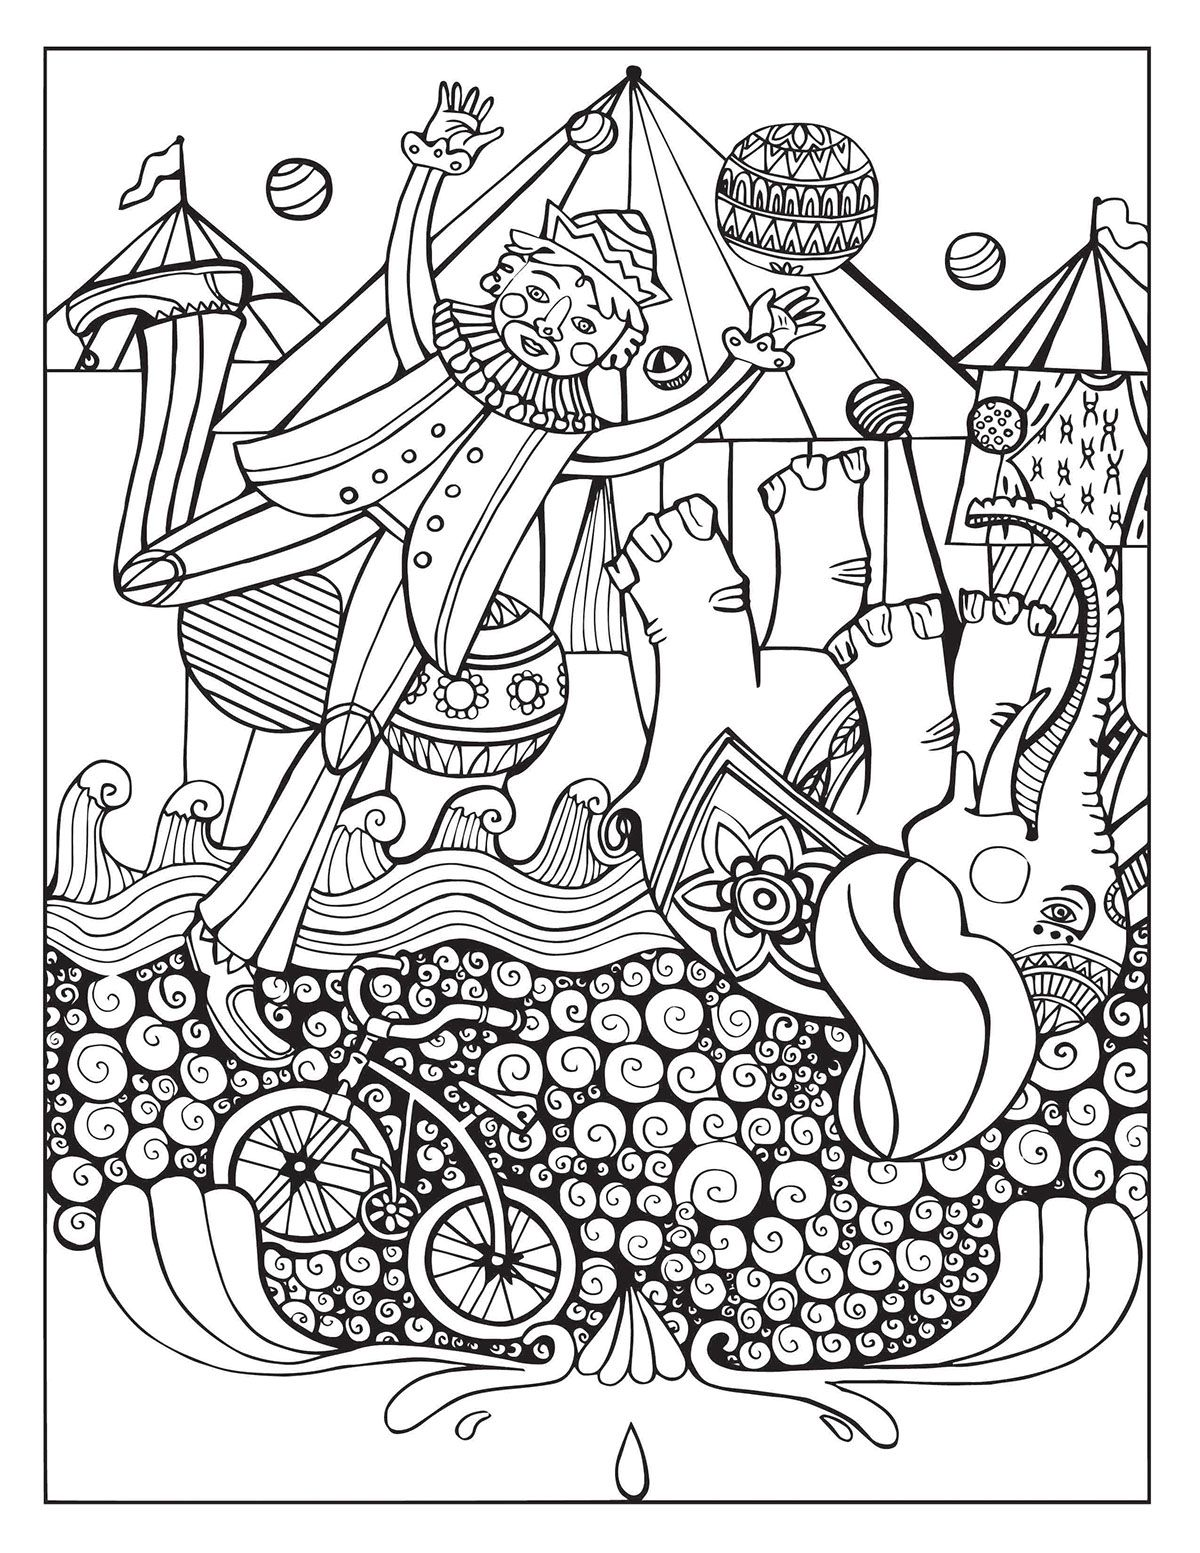 A Day At The Circus Coloring Page On Behance Coloring Pages Coloring Books Pattern Coloring Pages